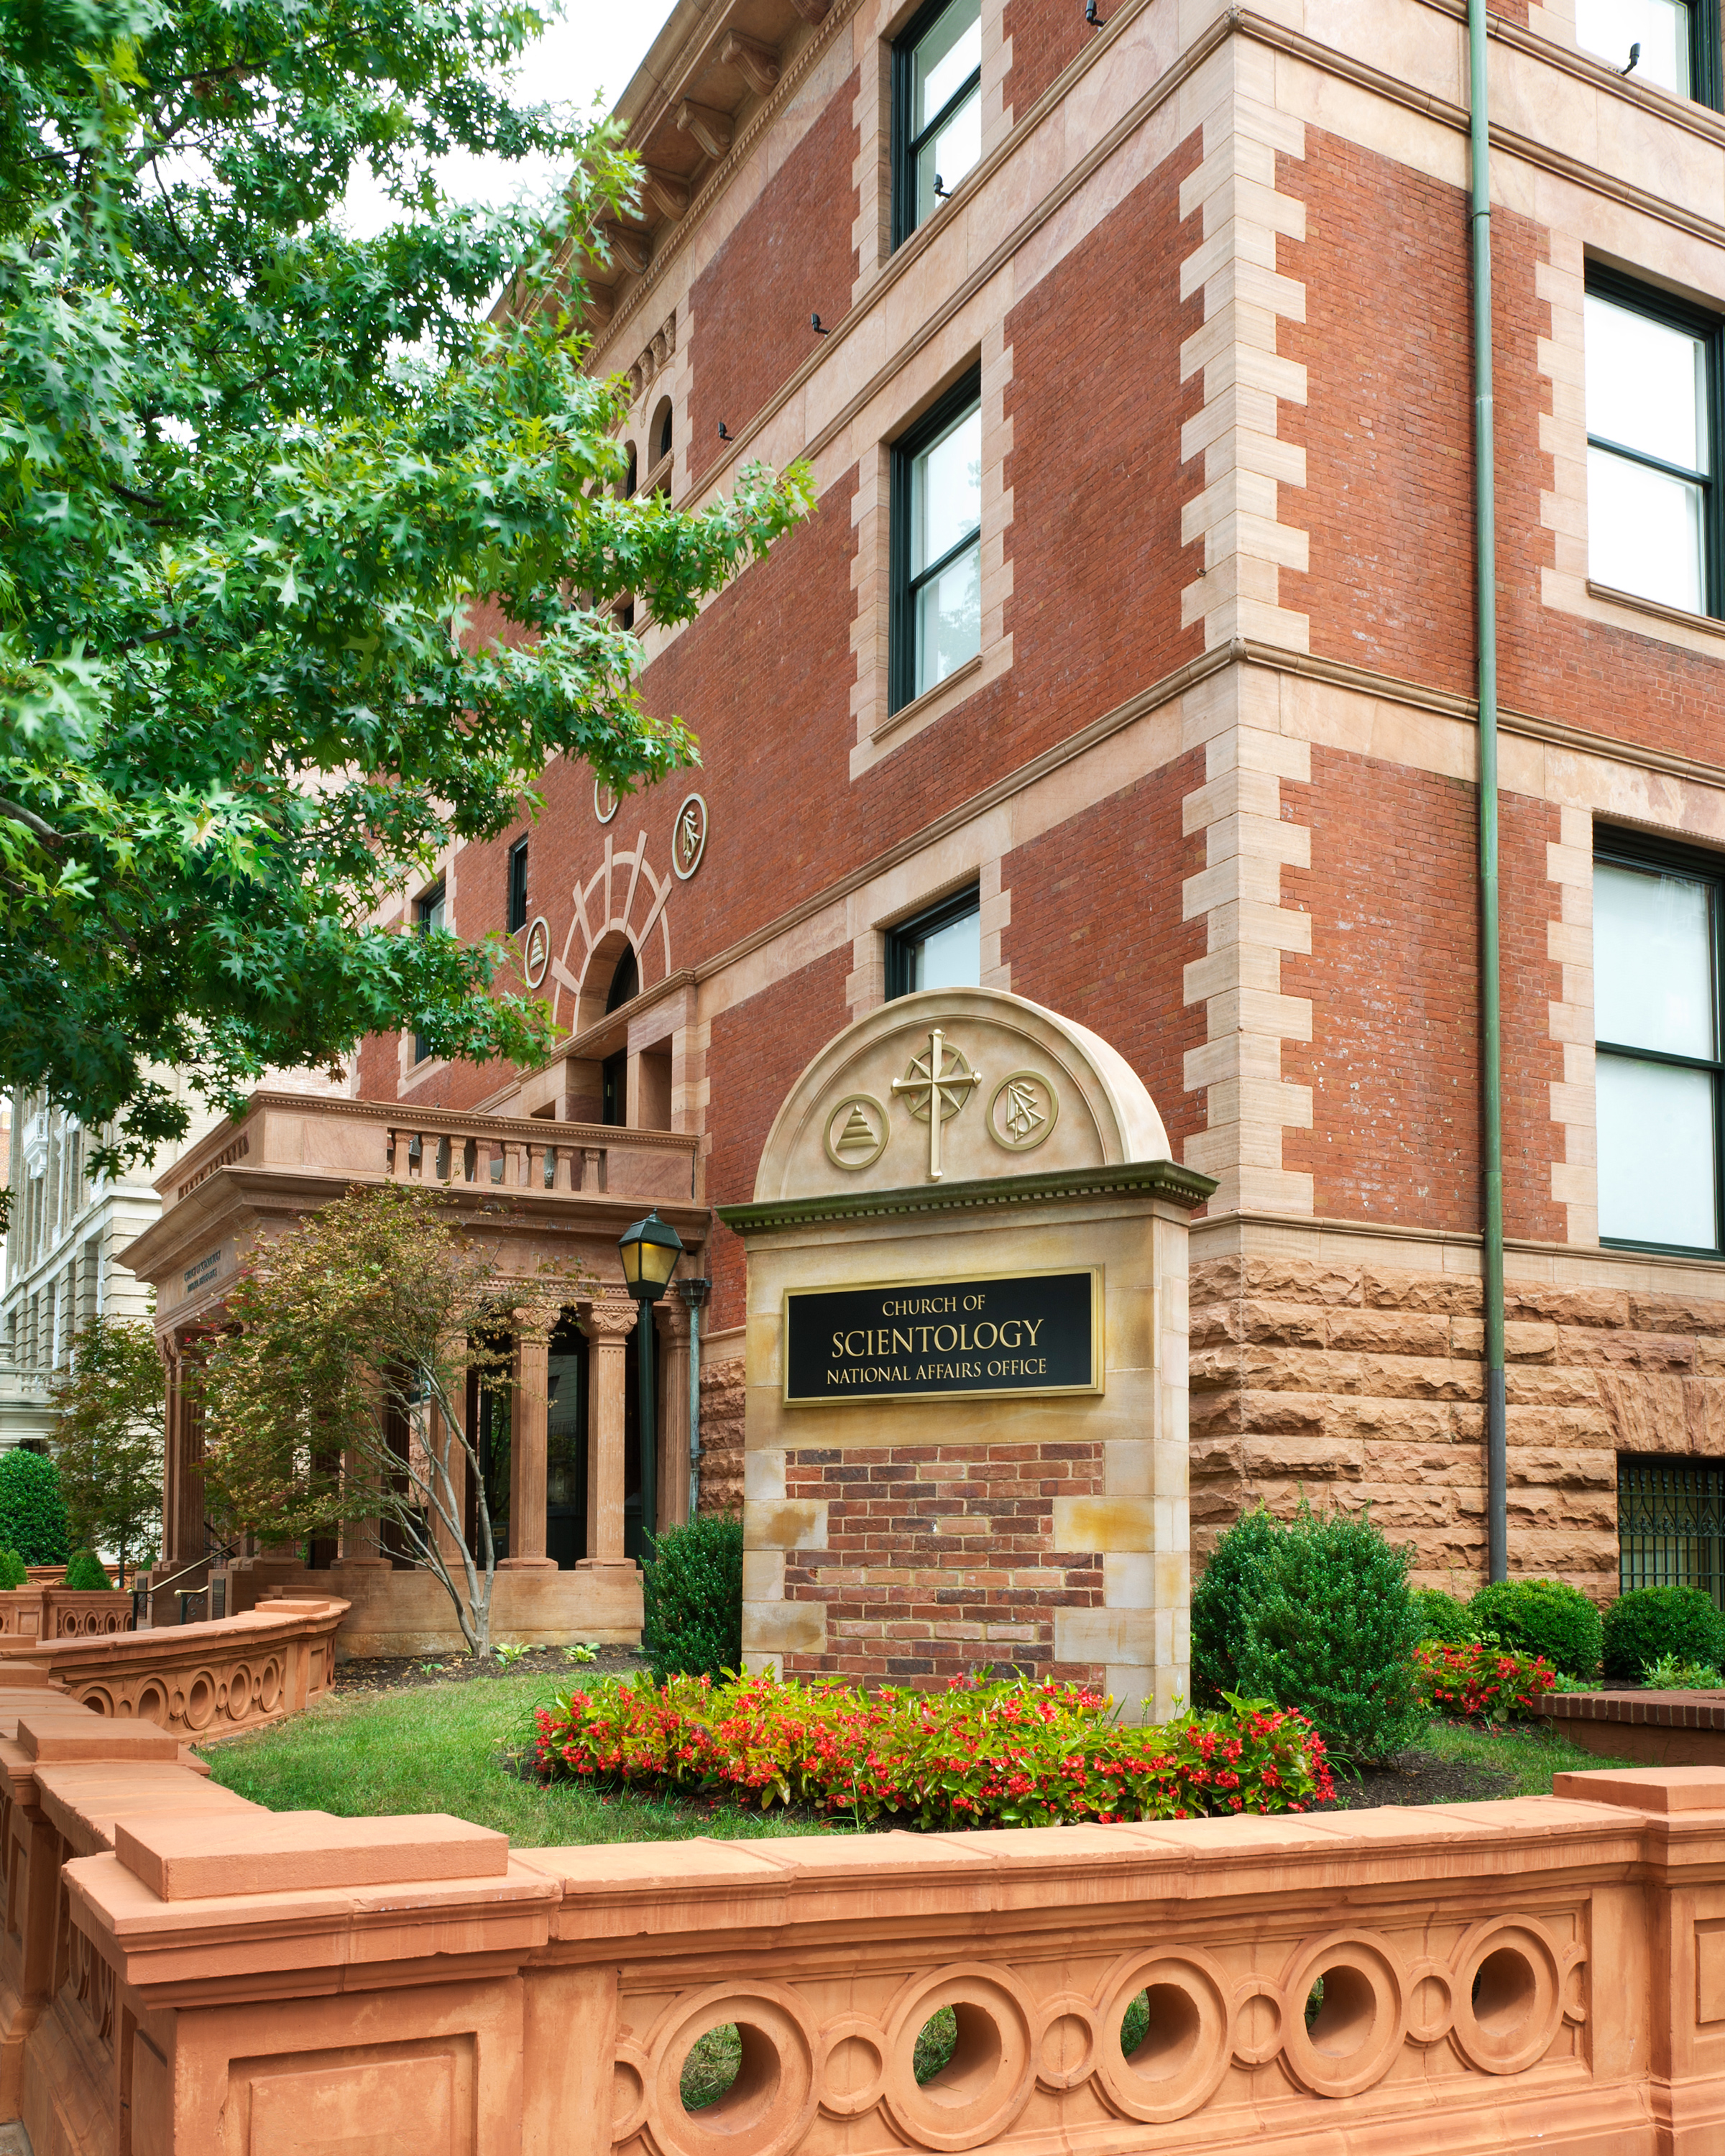 Founding Church of Scientology in Washington, D.C.